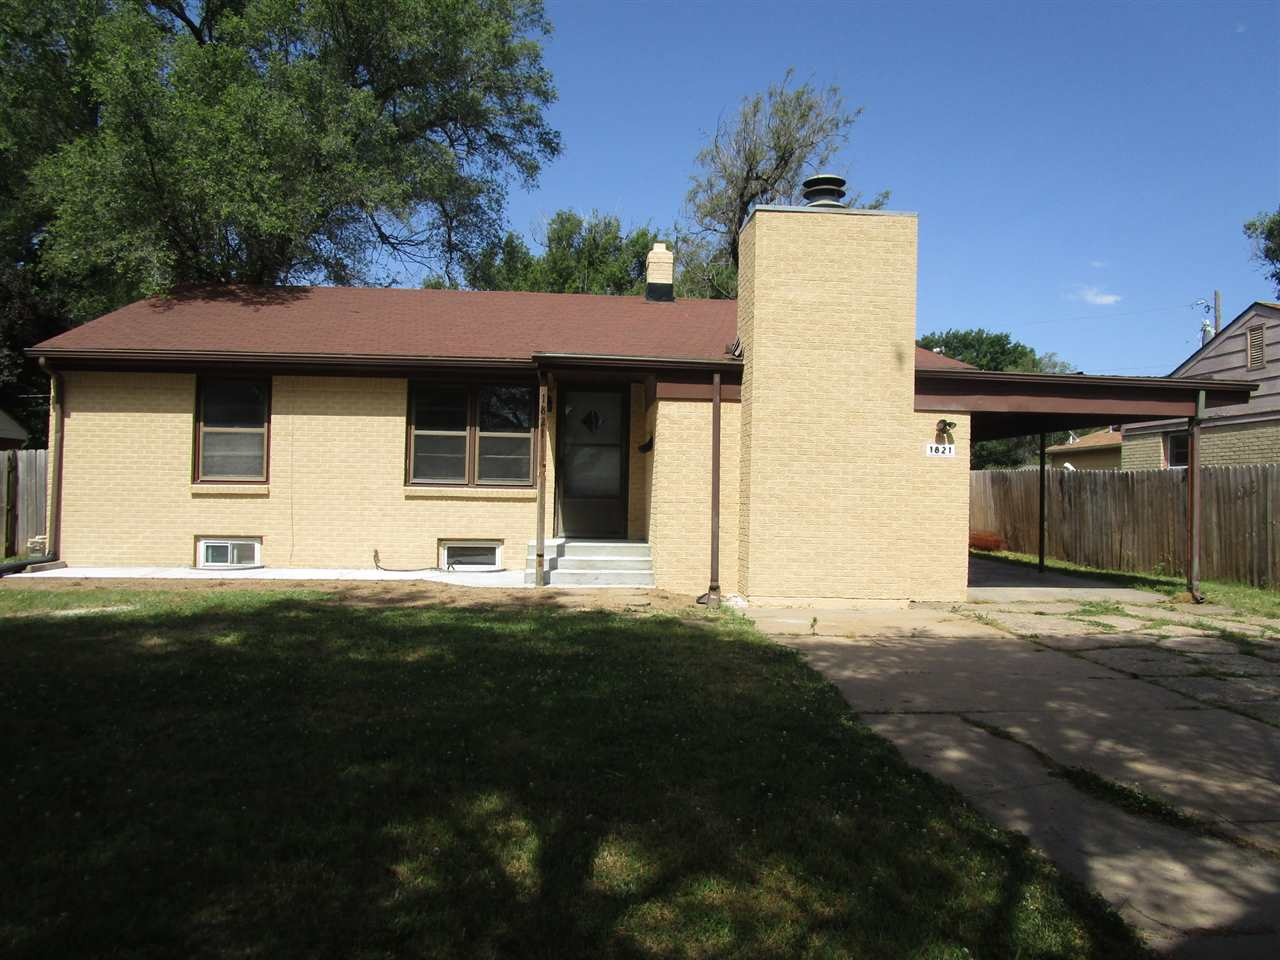 3-bedroom, 1.5 -bathroom all brick home in the southeast area. Large living/Dining combo area with s